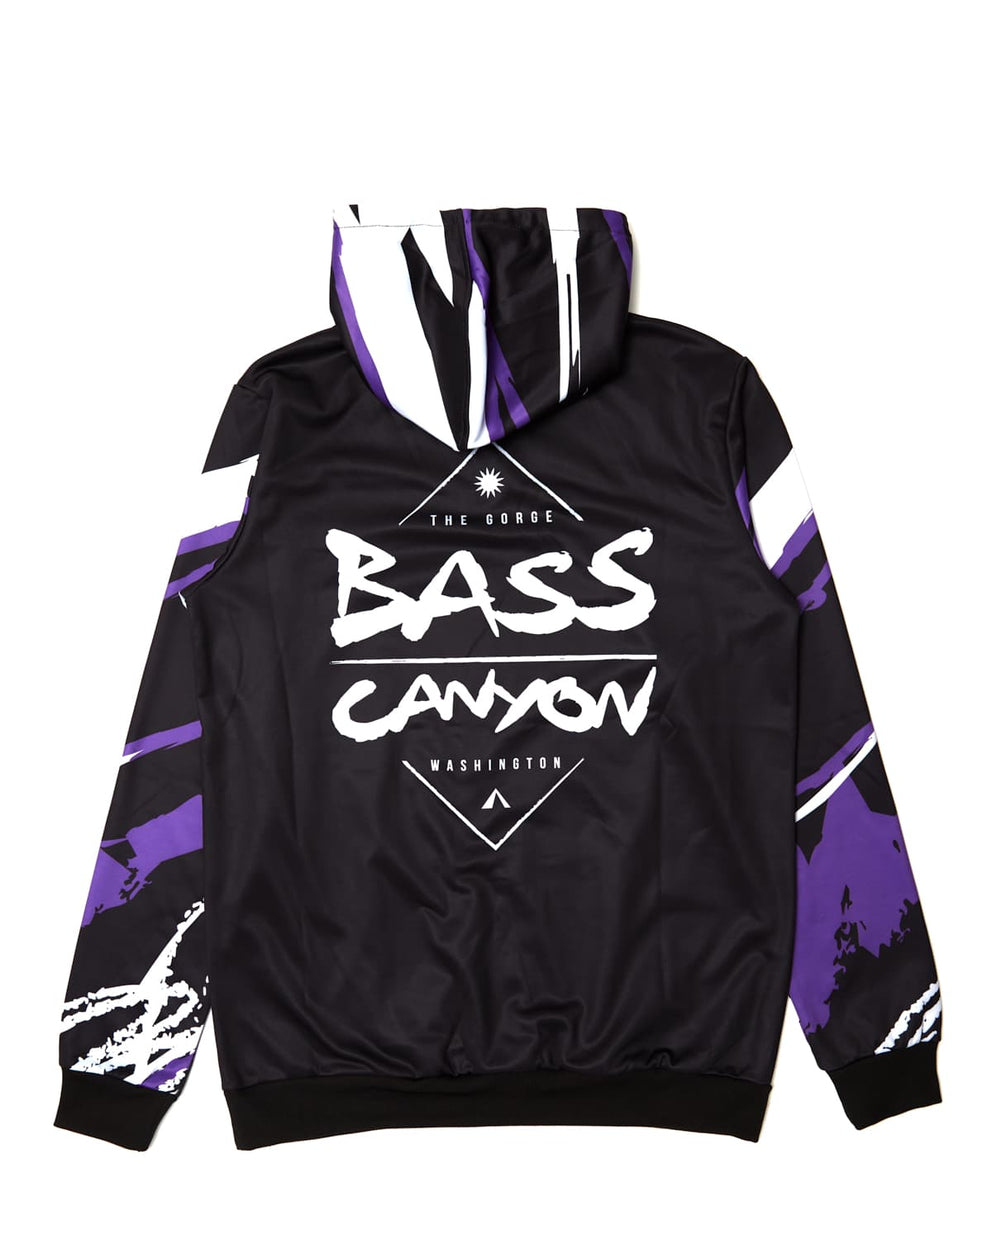 Bass Canyon 'Swirls' Hoodie - Black/Purple/White